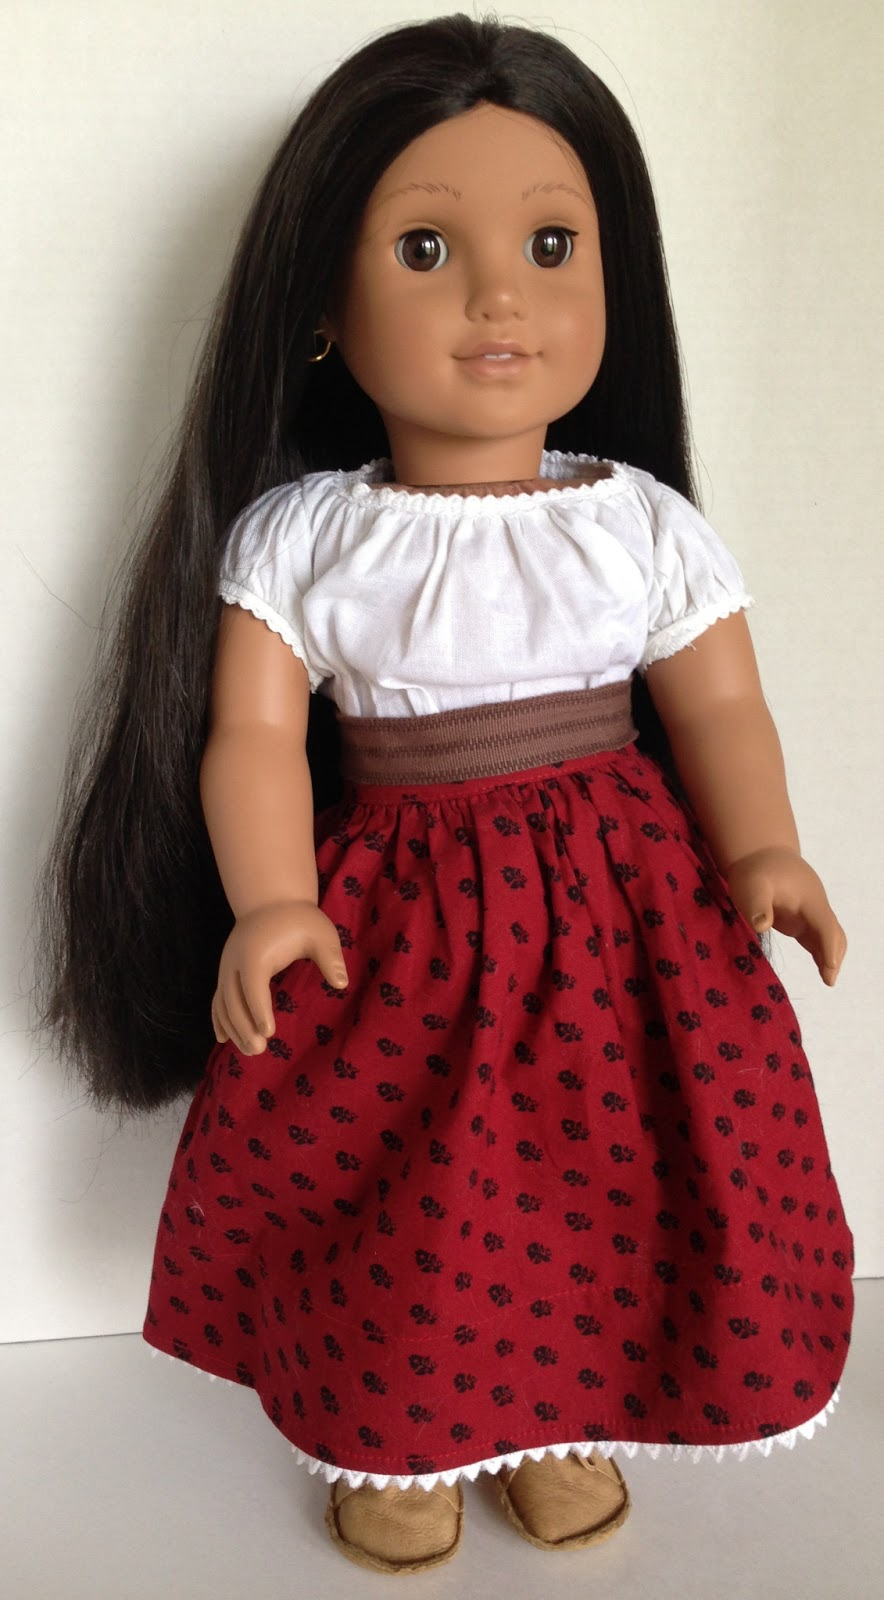 once upon a doll collection american girl josefina doll review. Black Bedroom Furniture Sets. Home Design Ideas